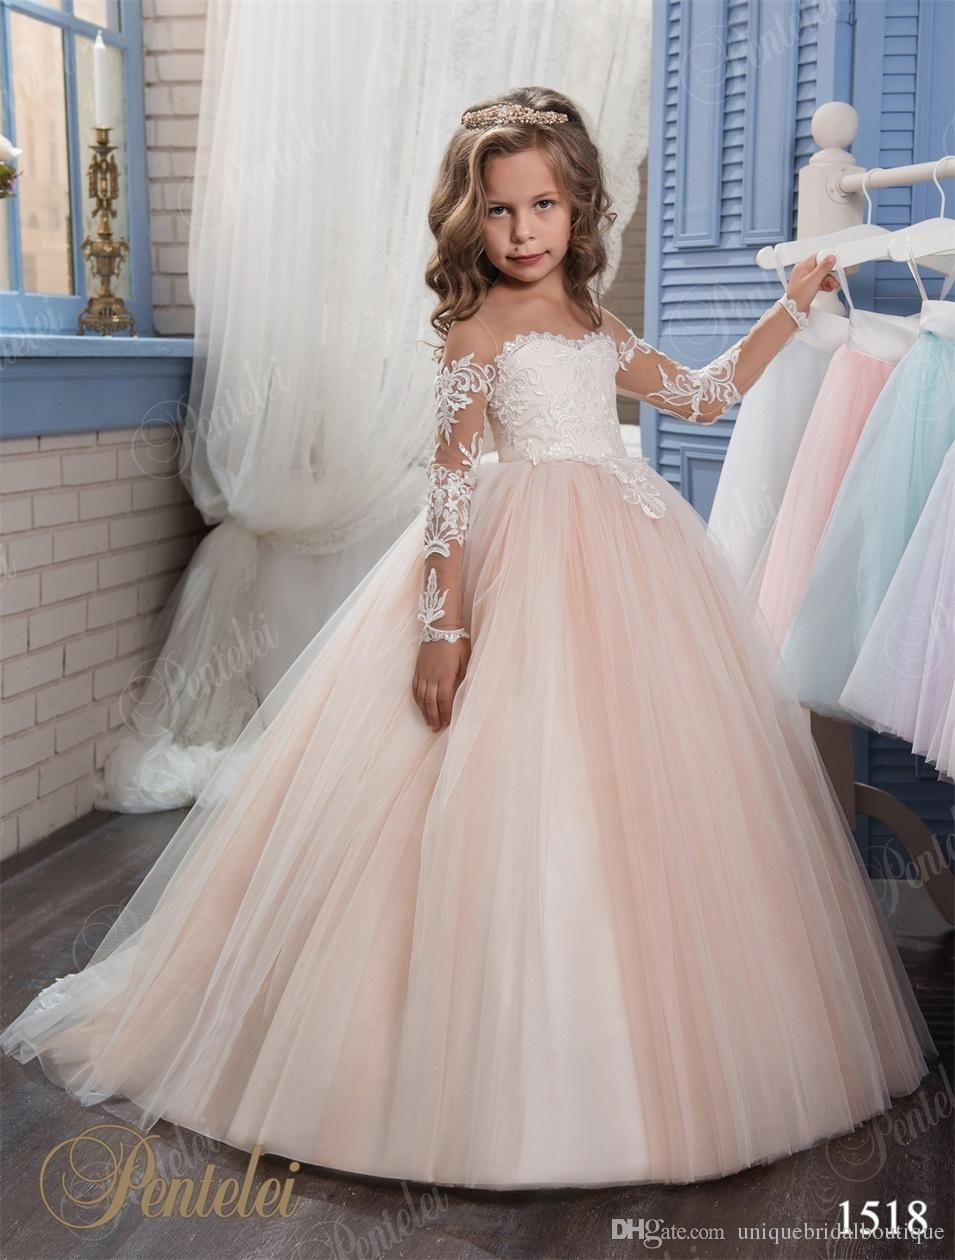 Kids wedding dresses 2017 pentelei with illusion long for Flower girls wedding dresses